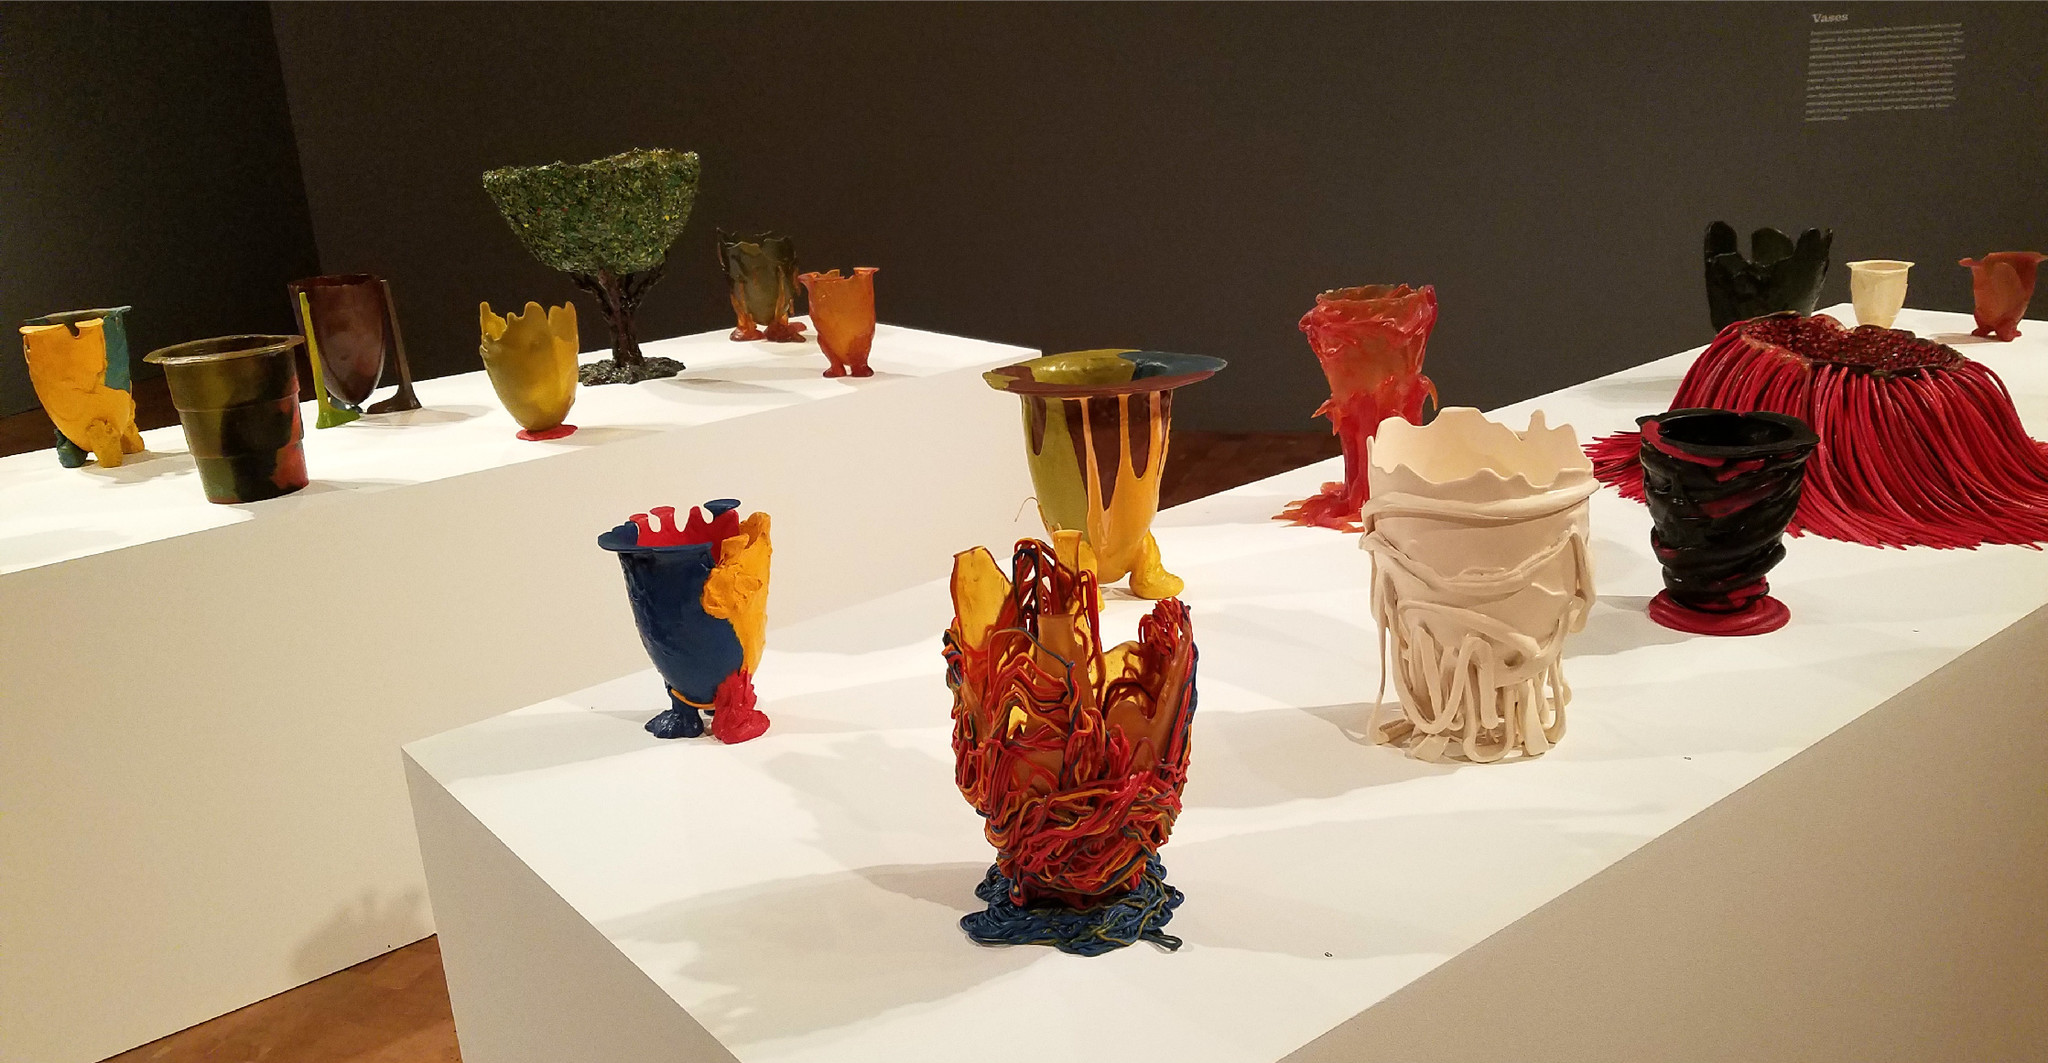 MOCA\'s Gaetano Pesce exhibition stumbles across a bright ethical line